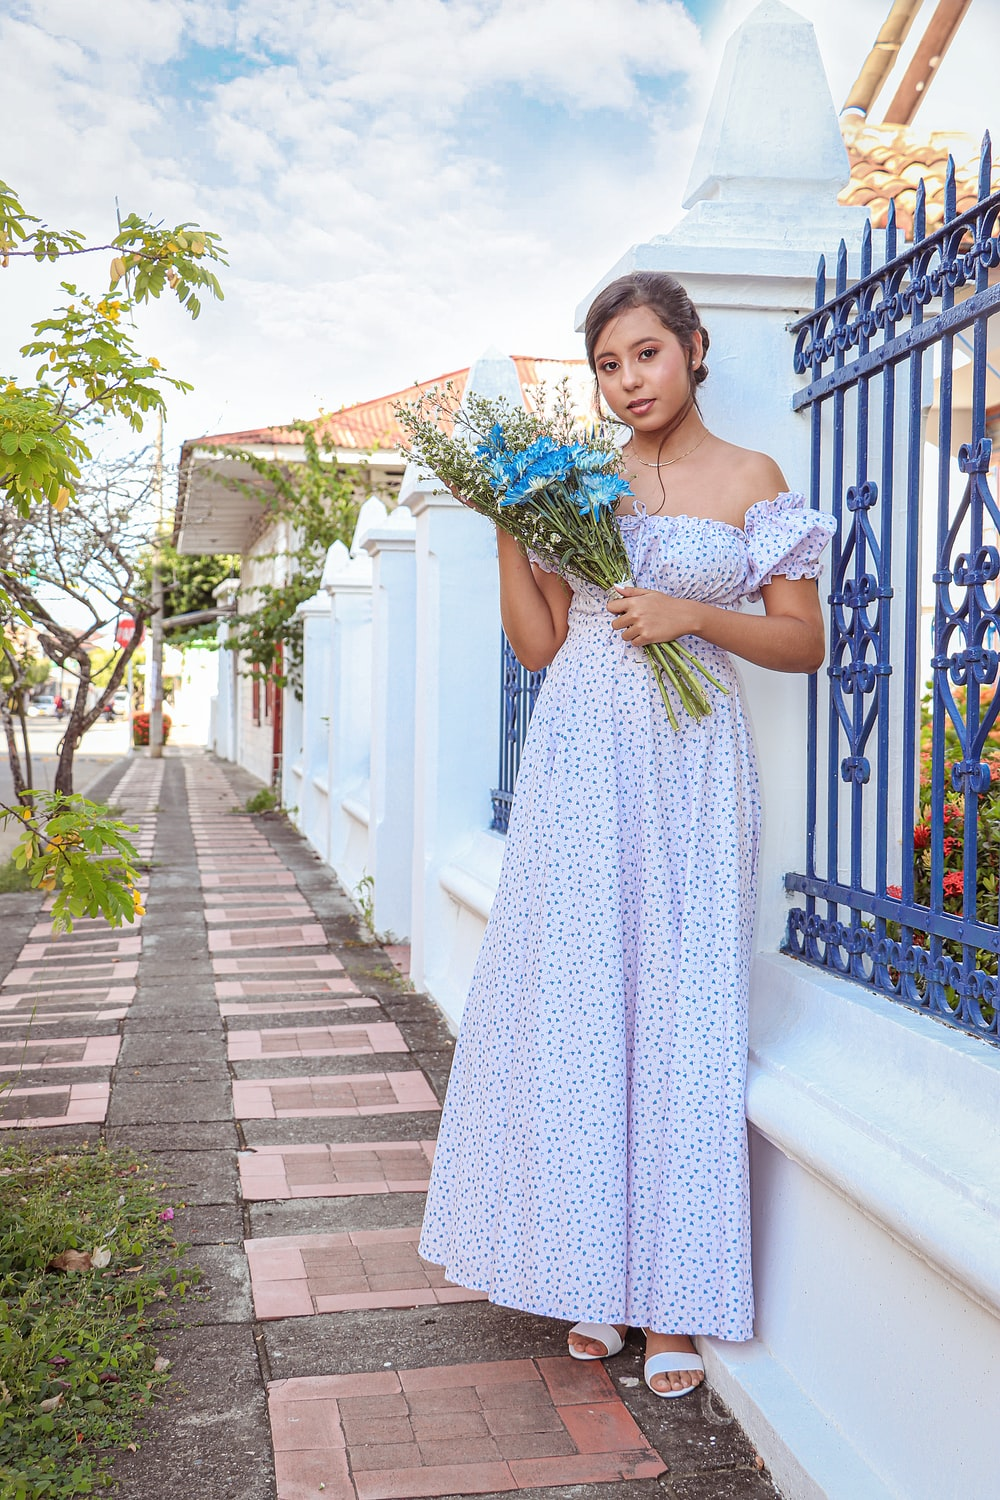 woman in blue and white polka dot sleeveless dress holding bouquet of flowers